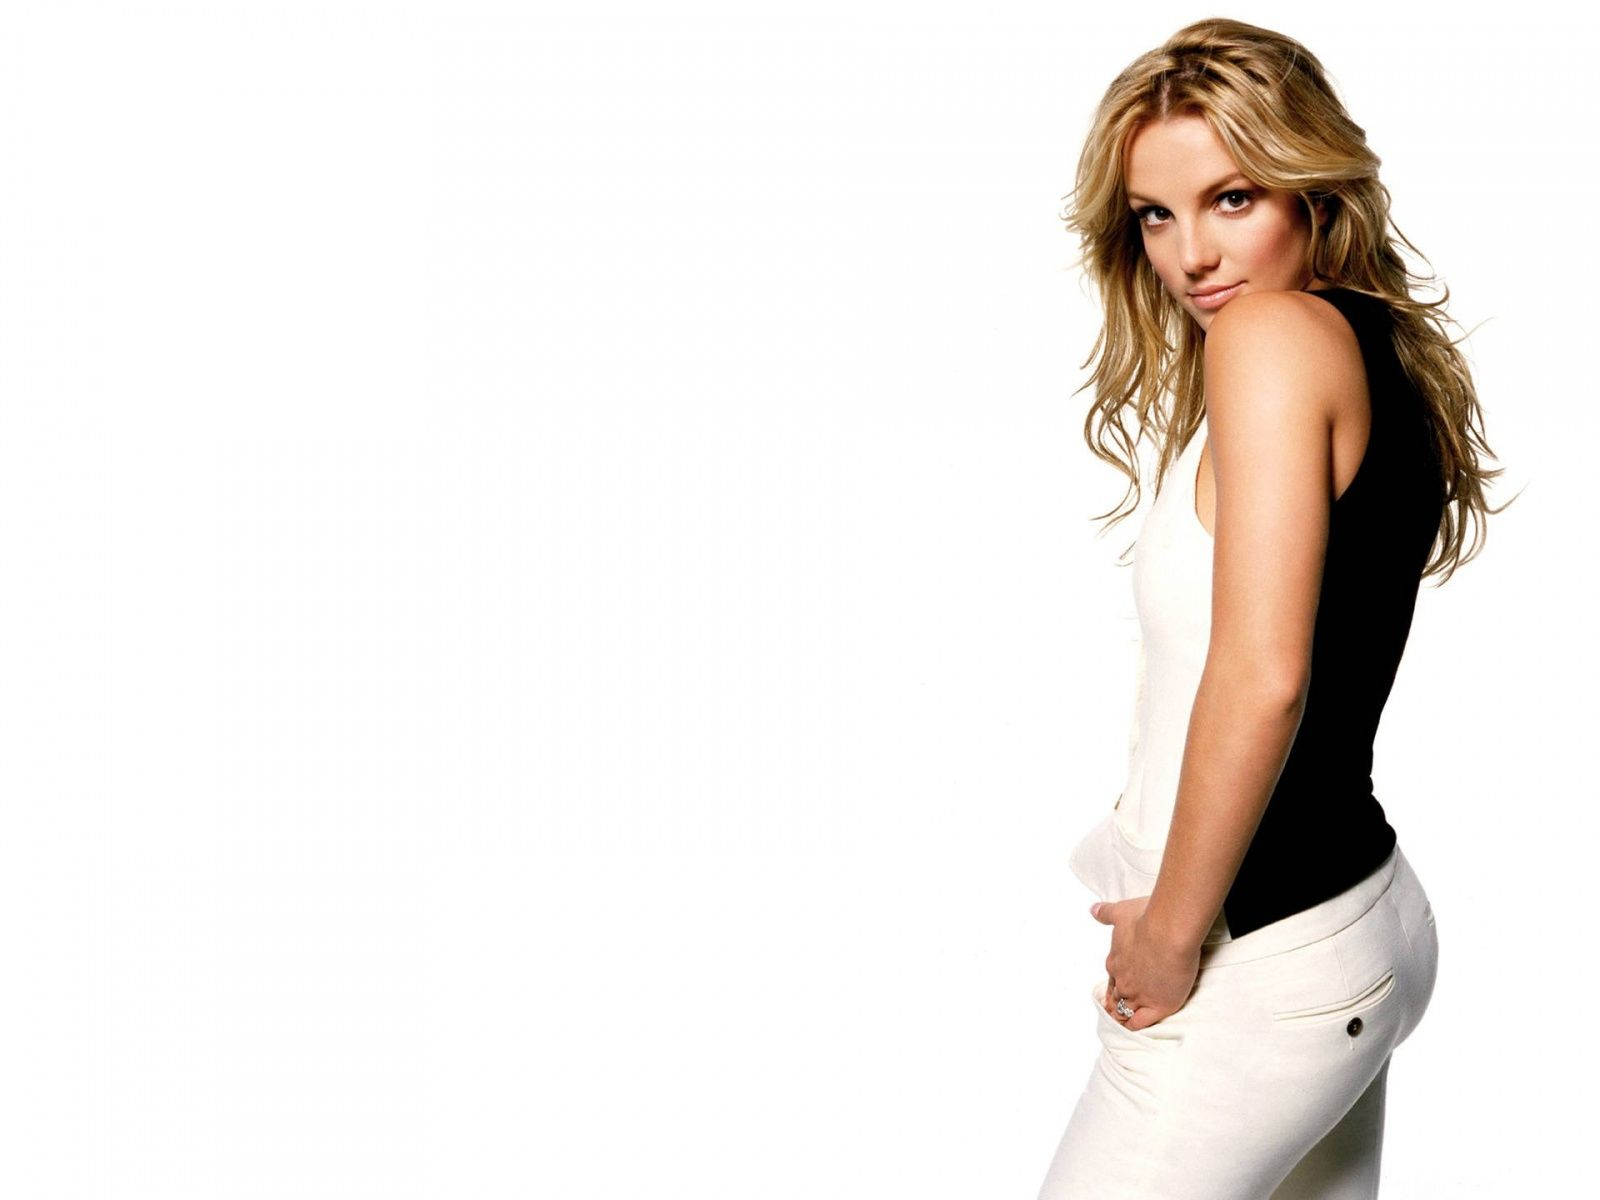 britney spears hd wallpapers backgrounds wallpaper | hd wallpapers